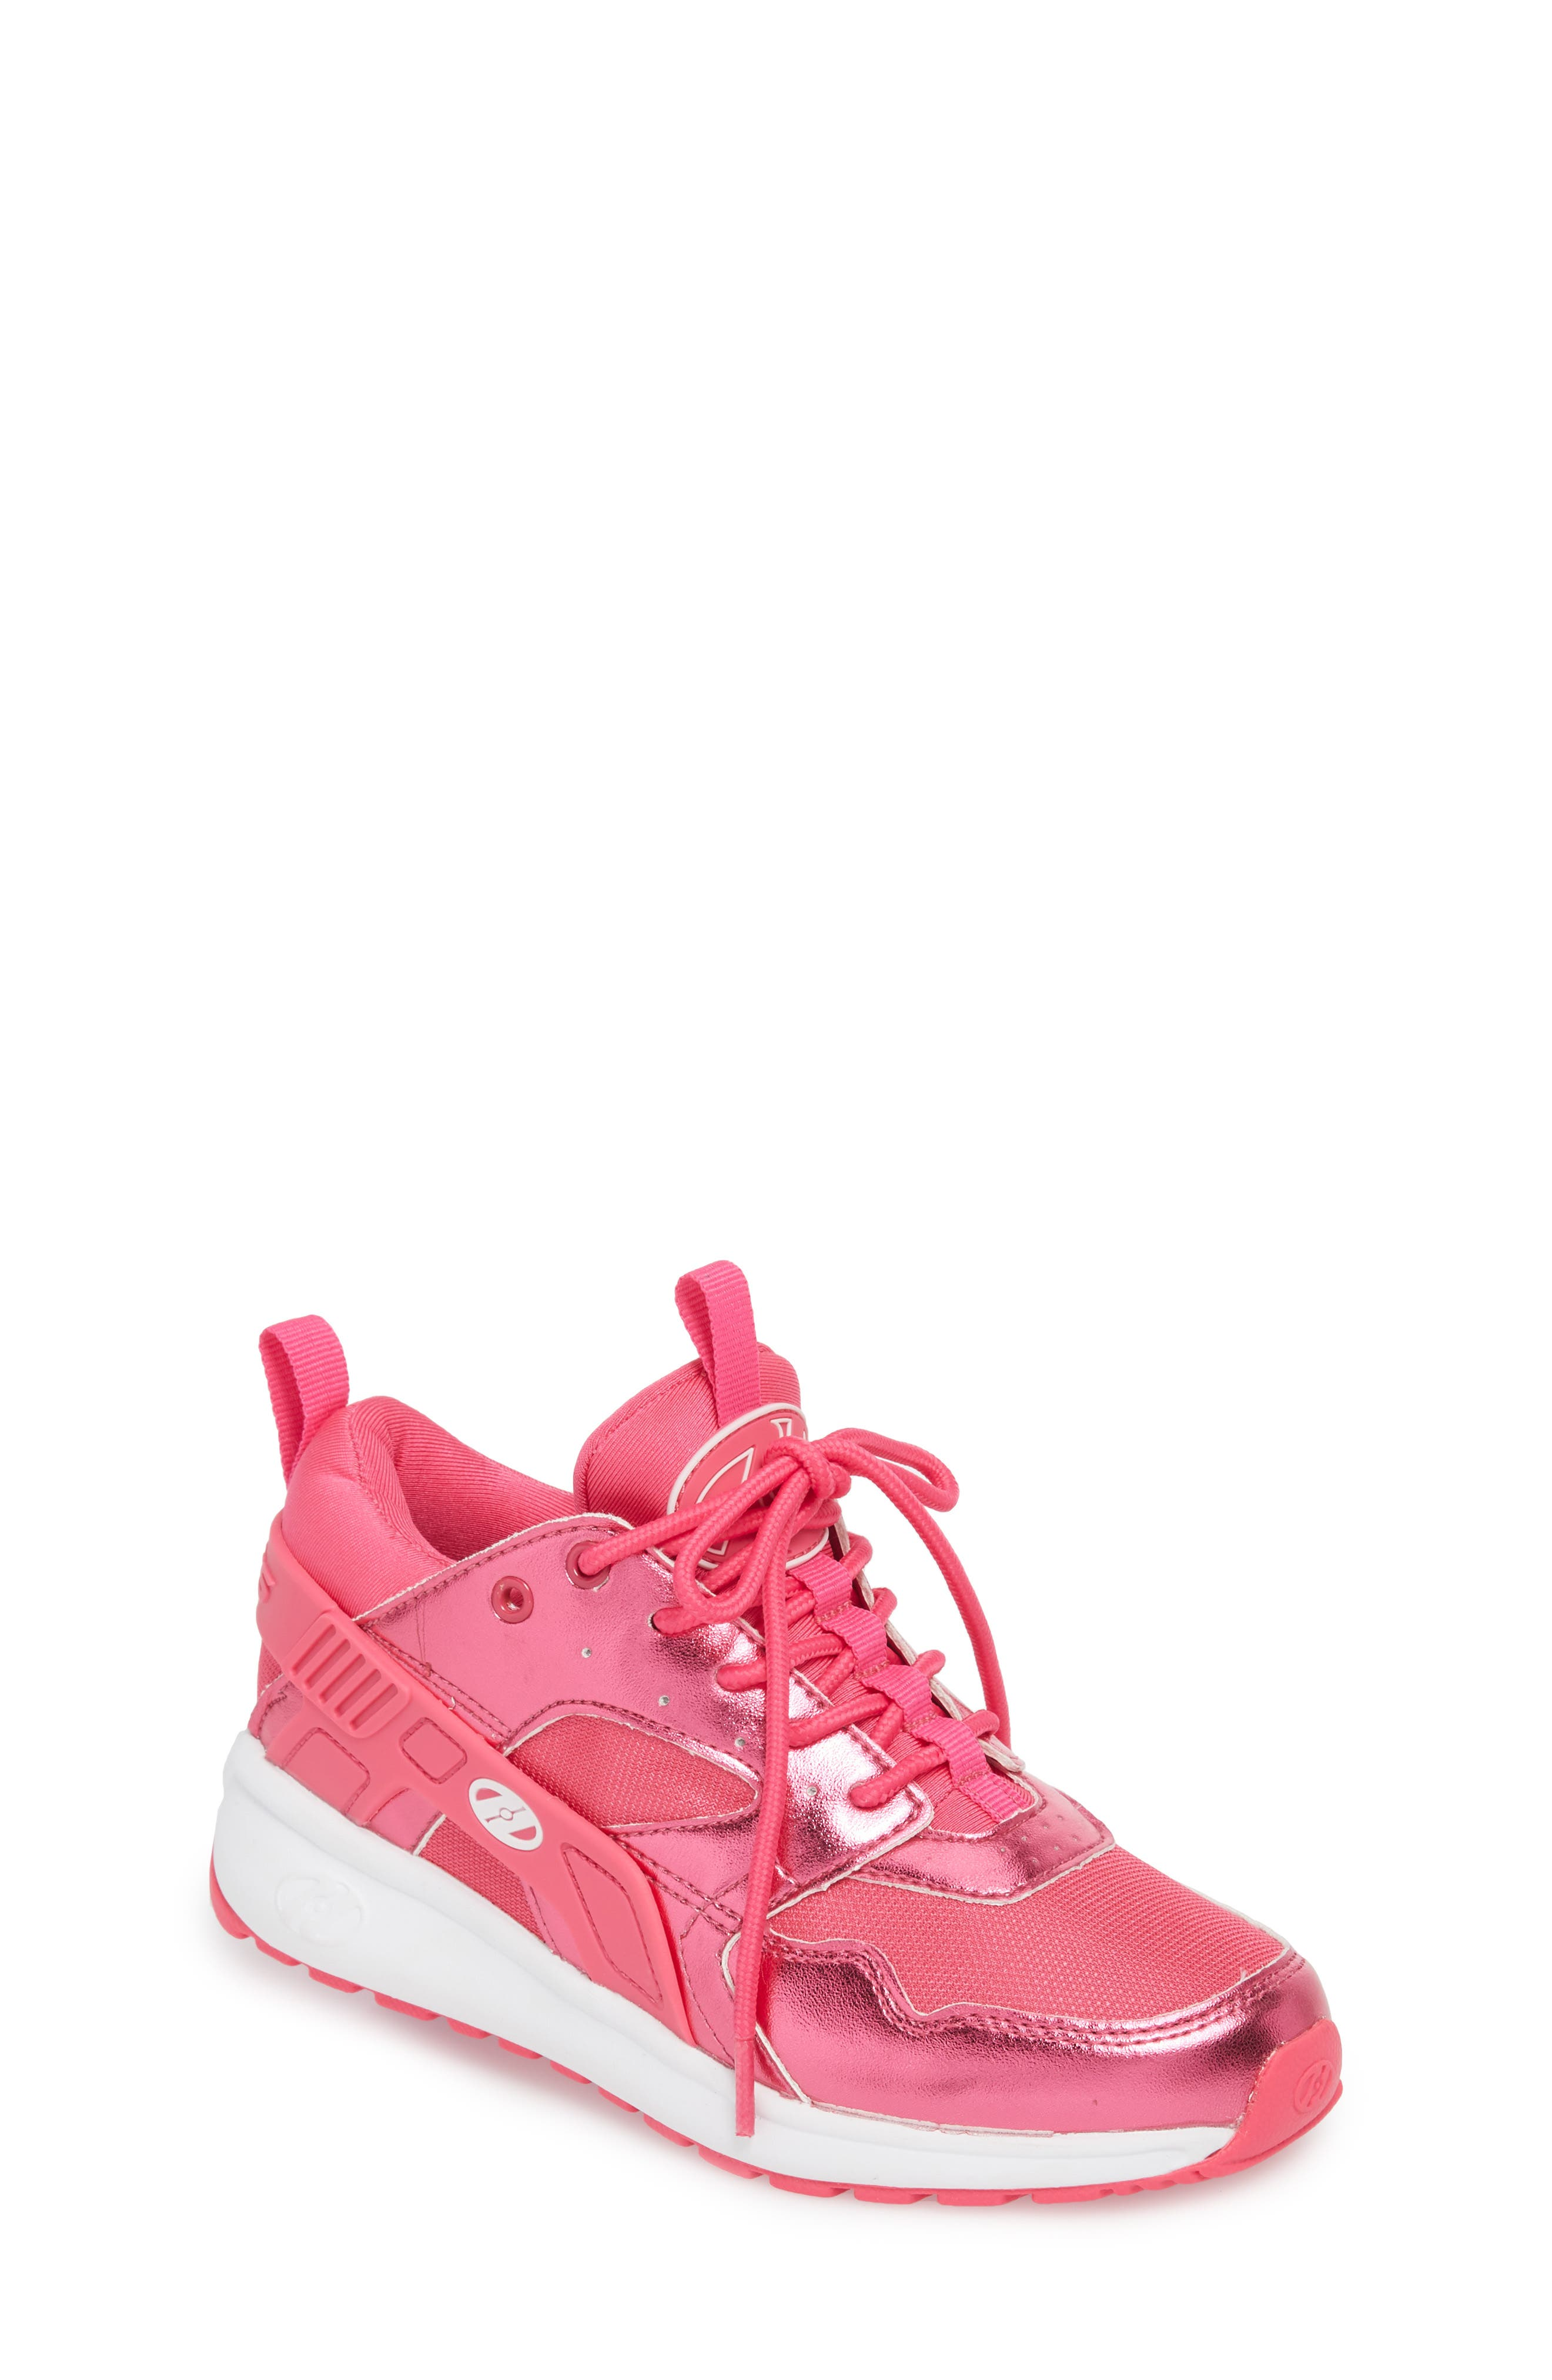 Force Sneaker,                         Main,                         color, Pink